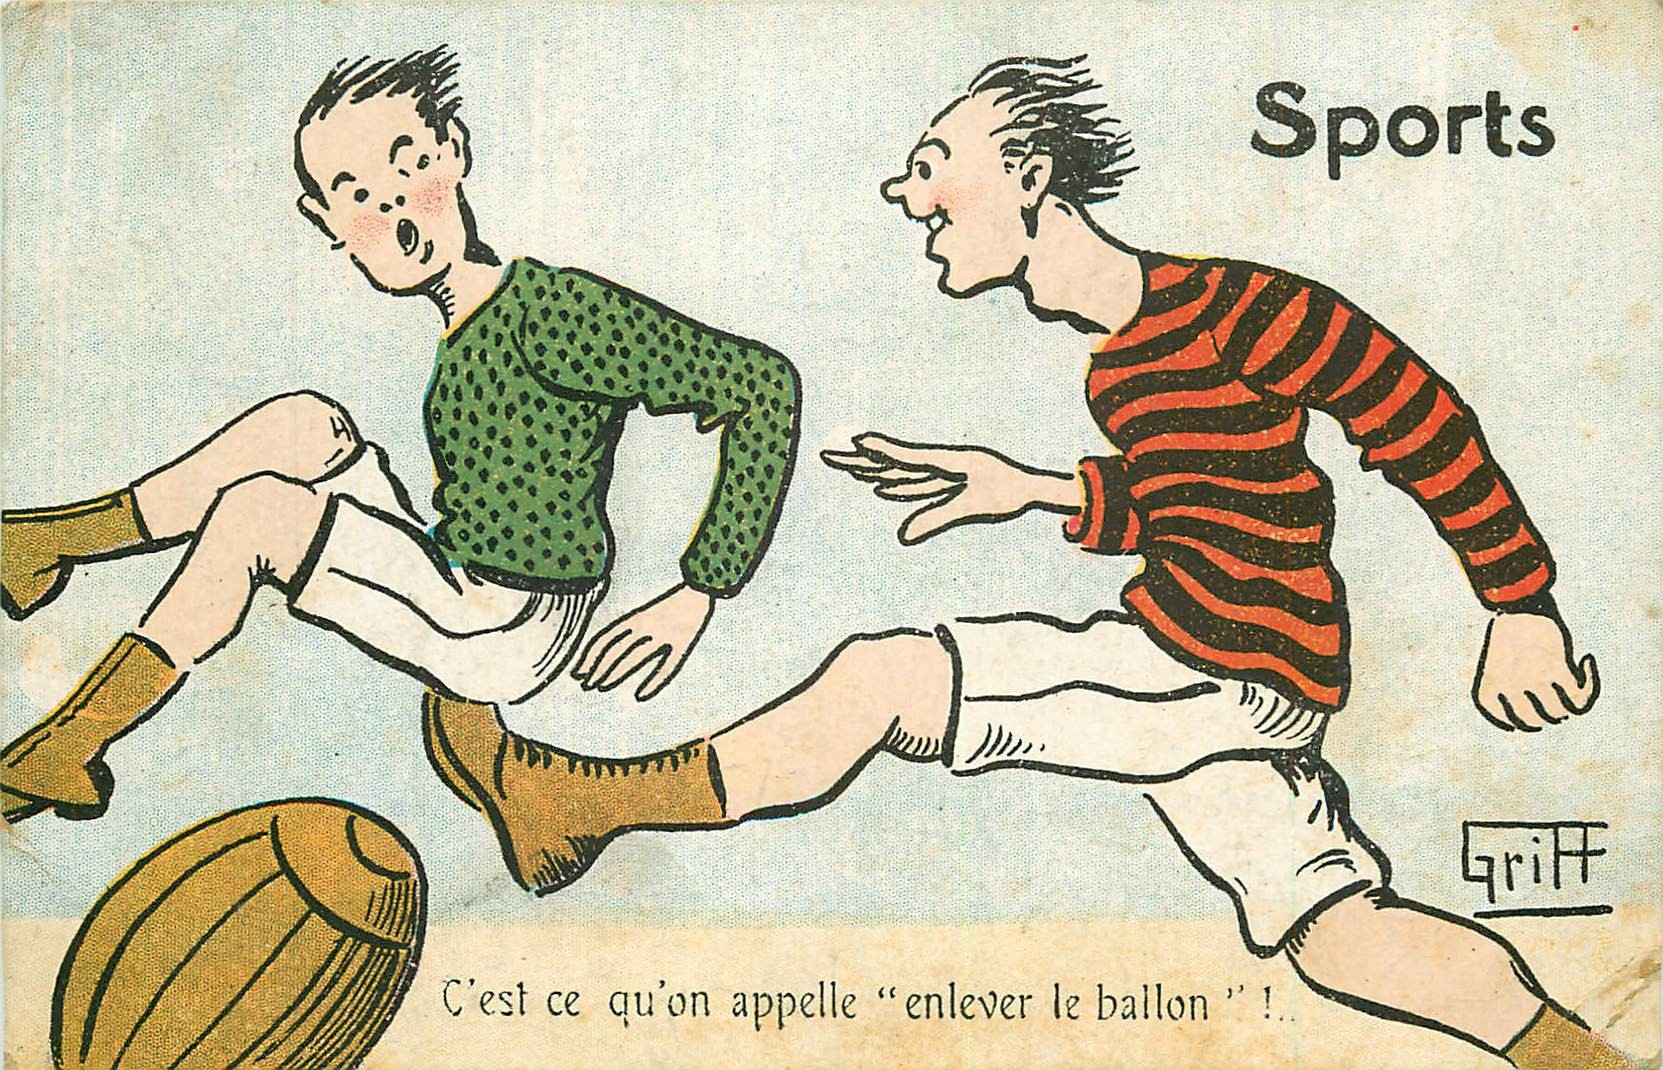 WW Illustrateur Griff avec les Sports. Enlever le ballon au Football !